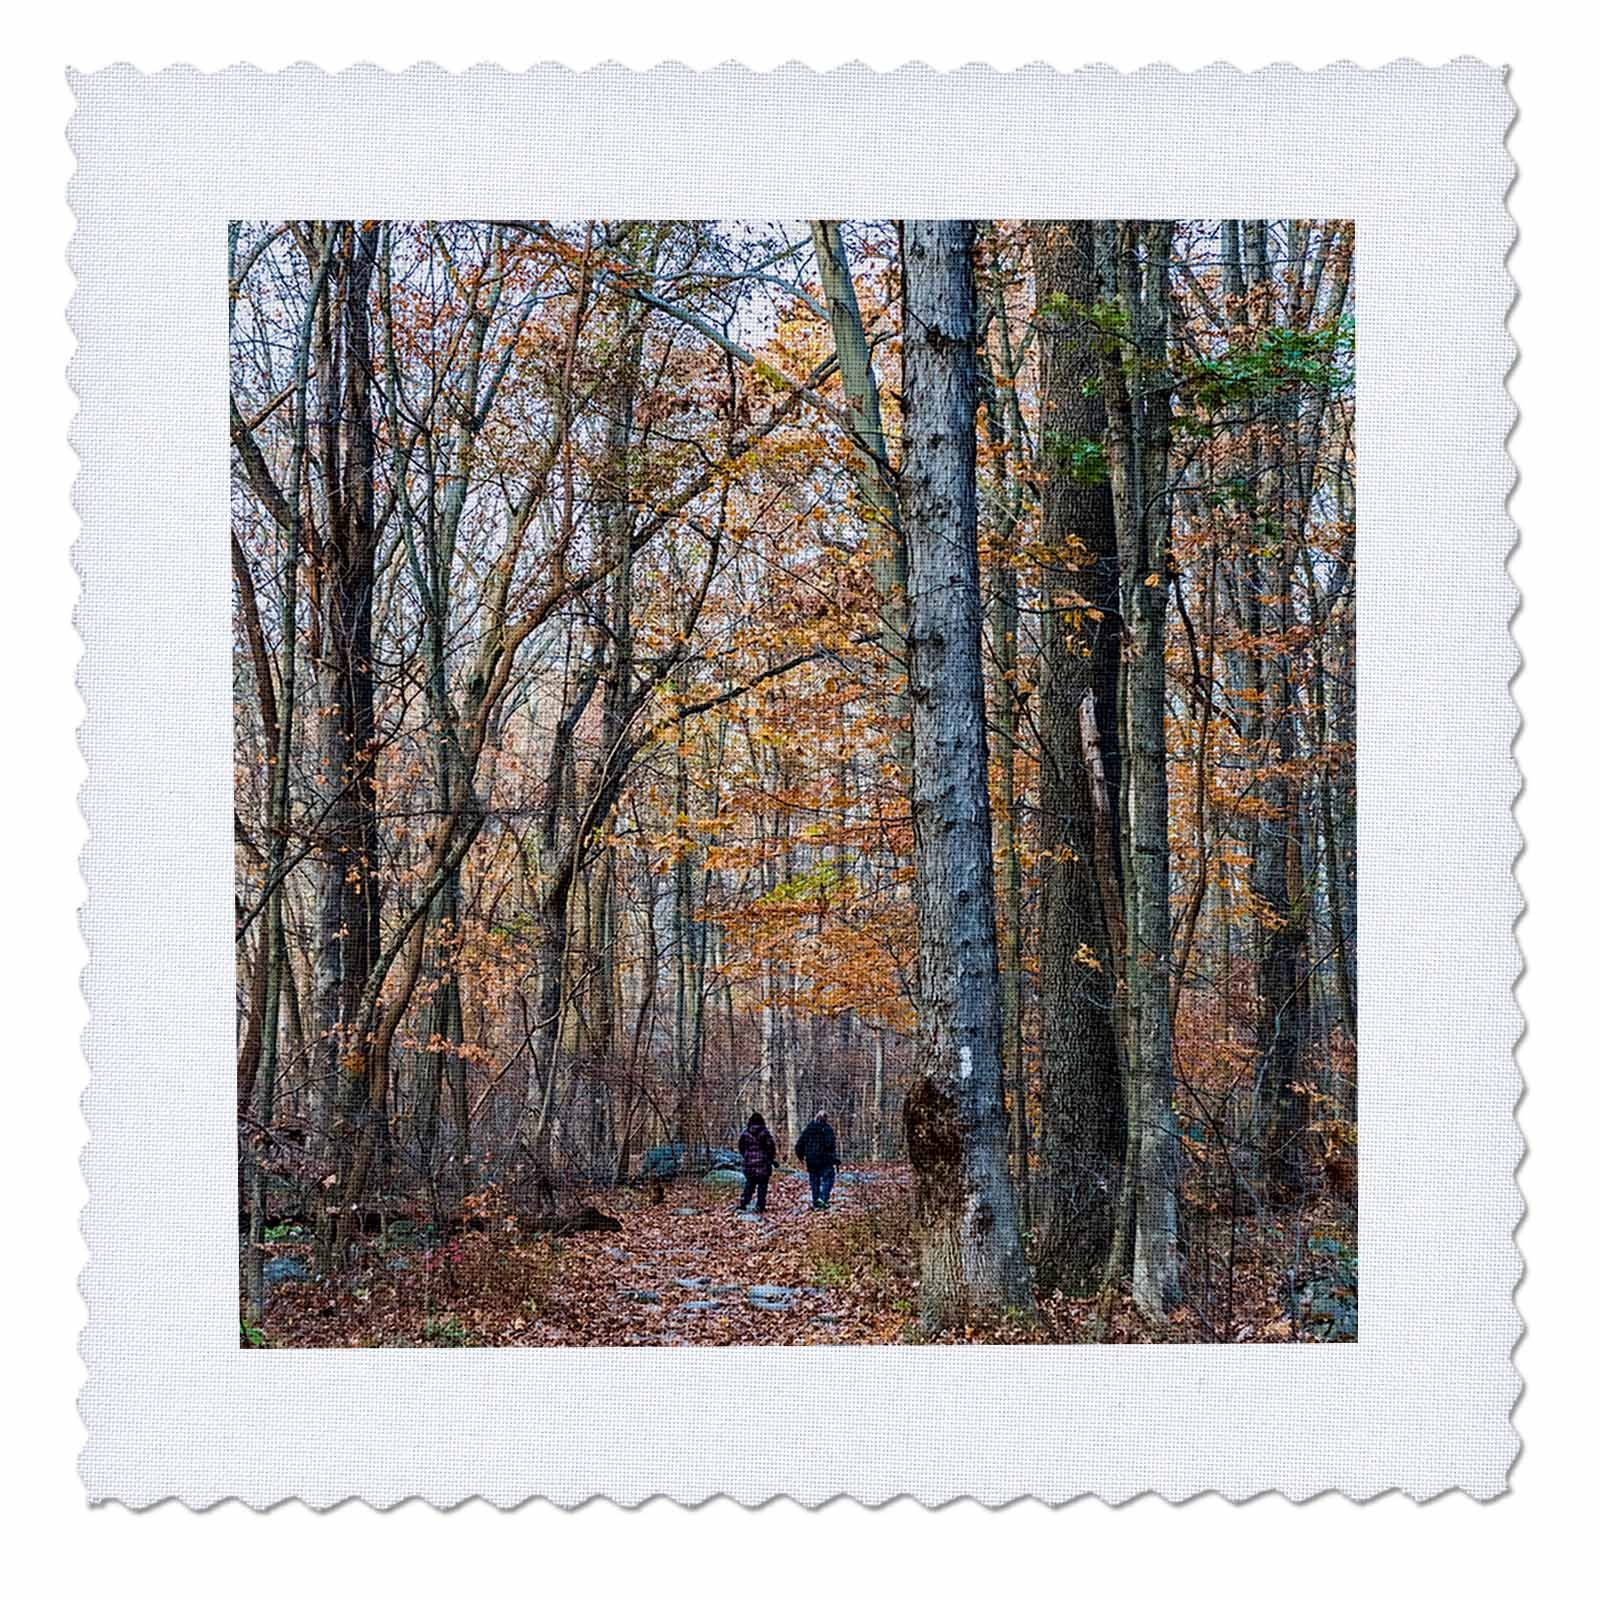 3dRose Roni Chastain Photography - Walk in the woods - 14x14 inch quilt square (qs_280457_5)